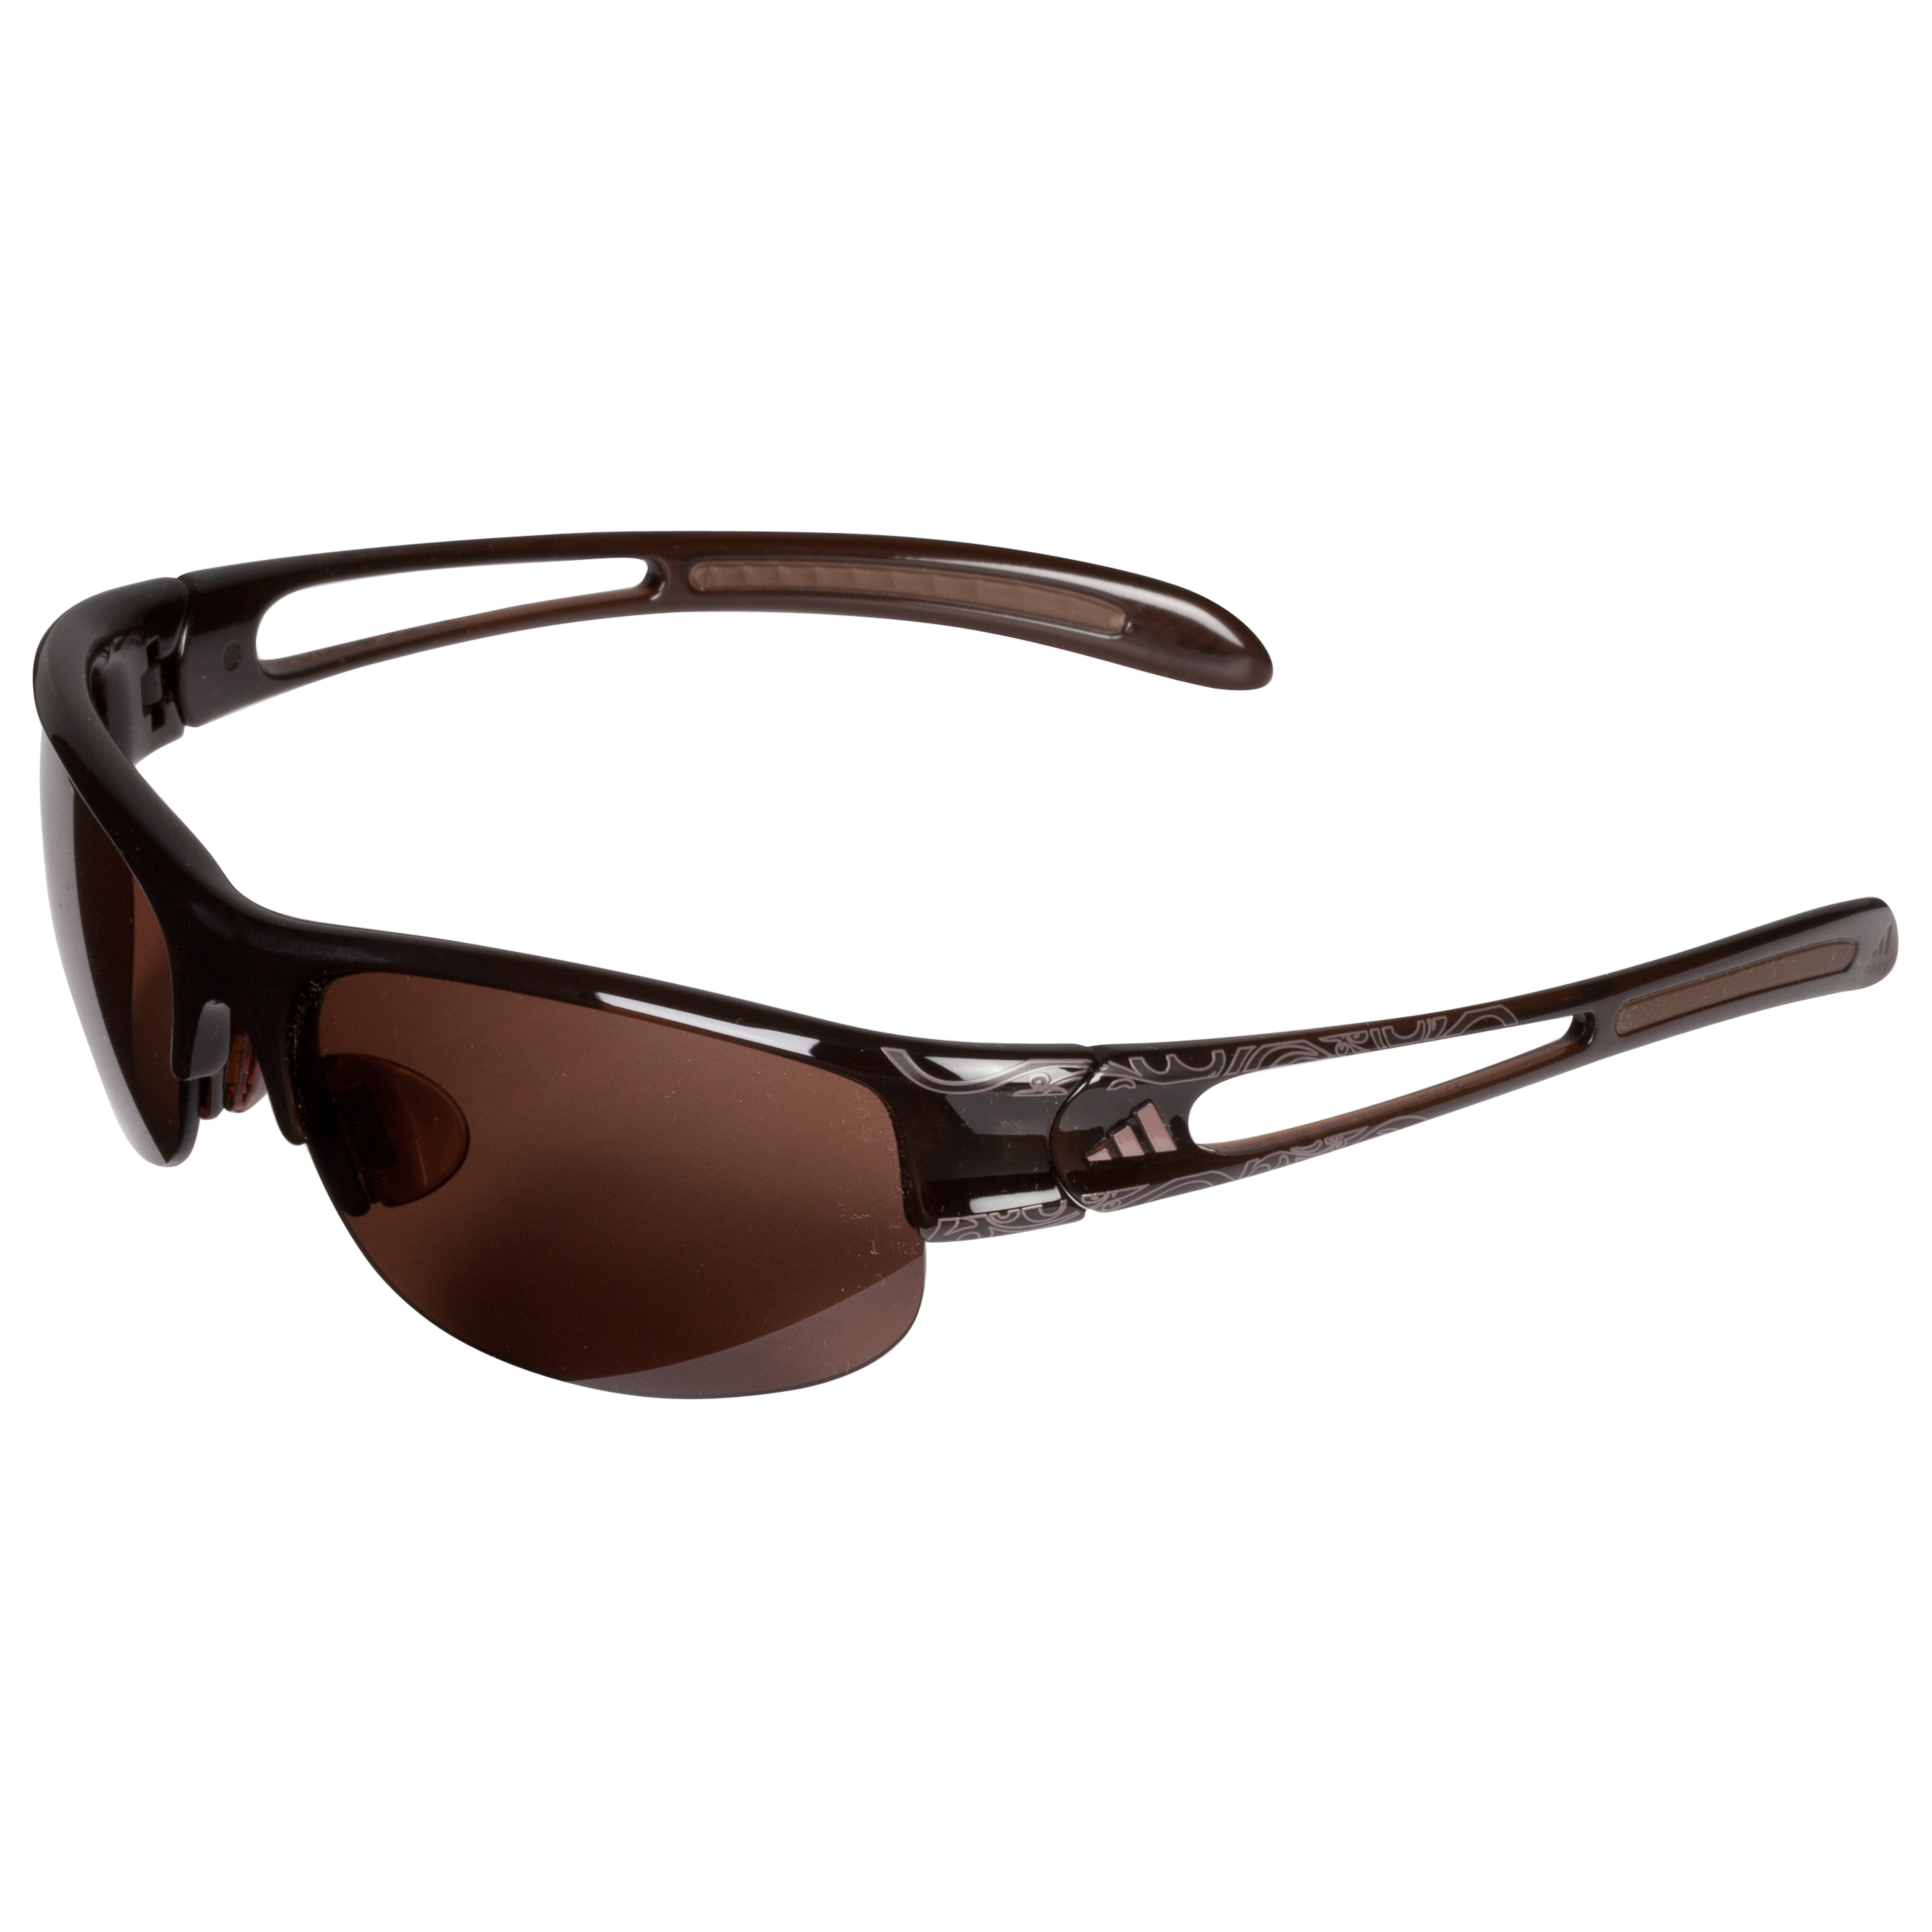 Adidas Adilibria Halfrim Sunglasses - Brown